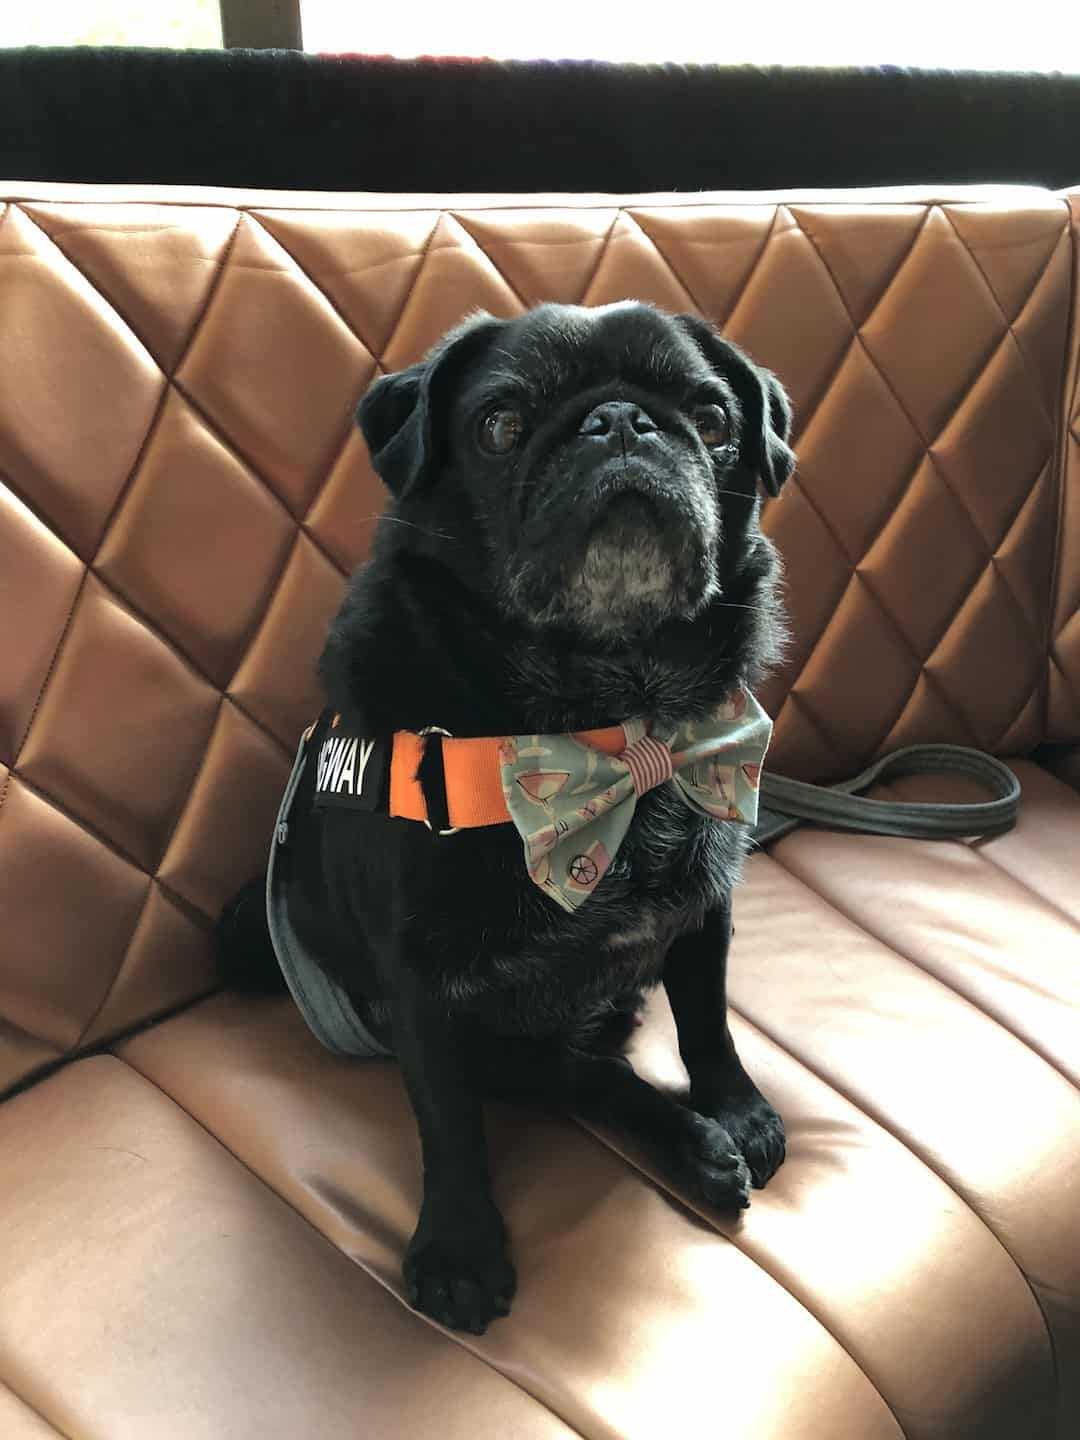 My Dog-friendly London Clapham & Battersea By Hemingway The Pug Smith & Whistle 2